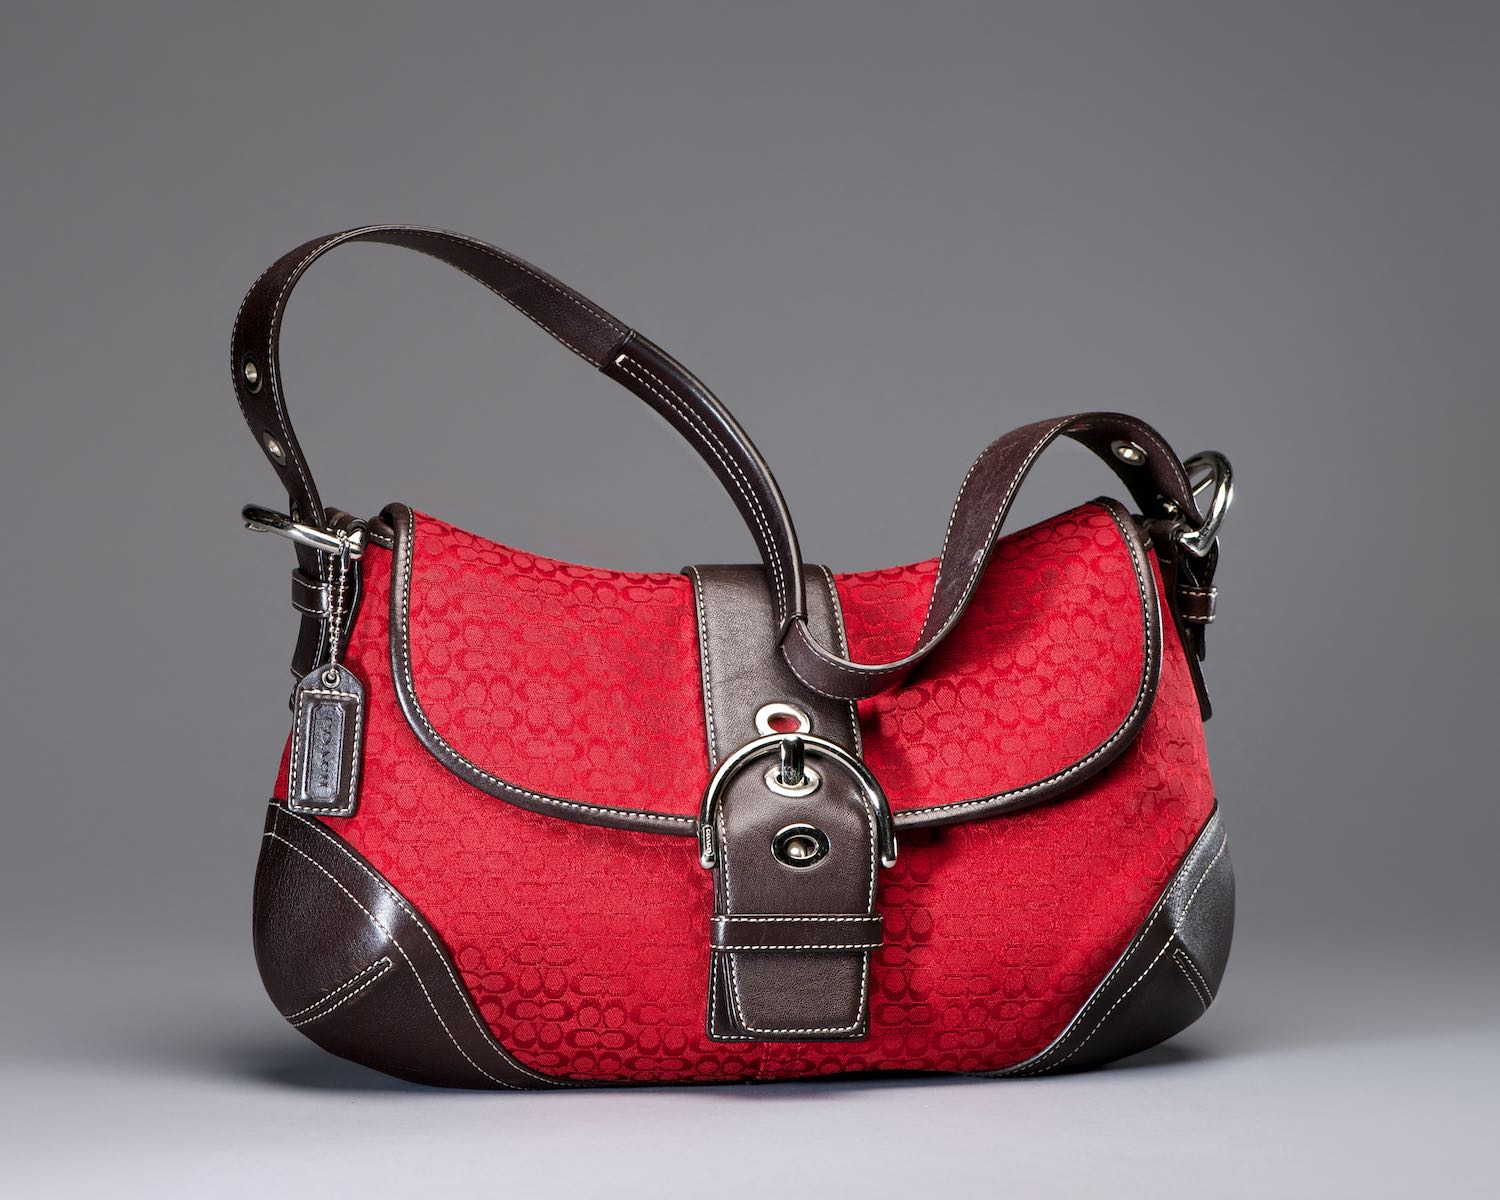 Coach handbag red with dark brown leather trim by Bret Doss Commercial Product Photography Seattle